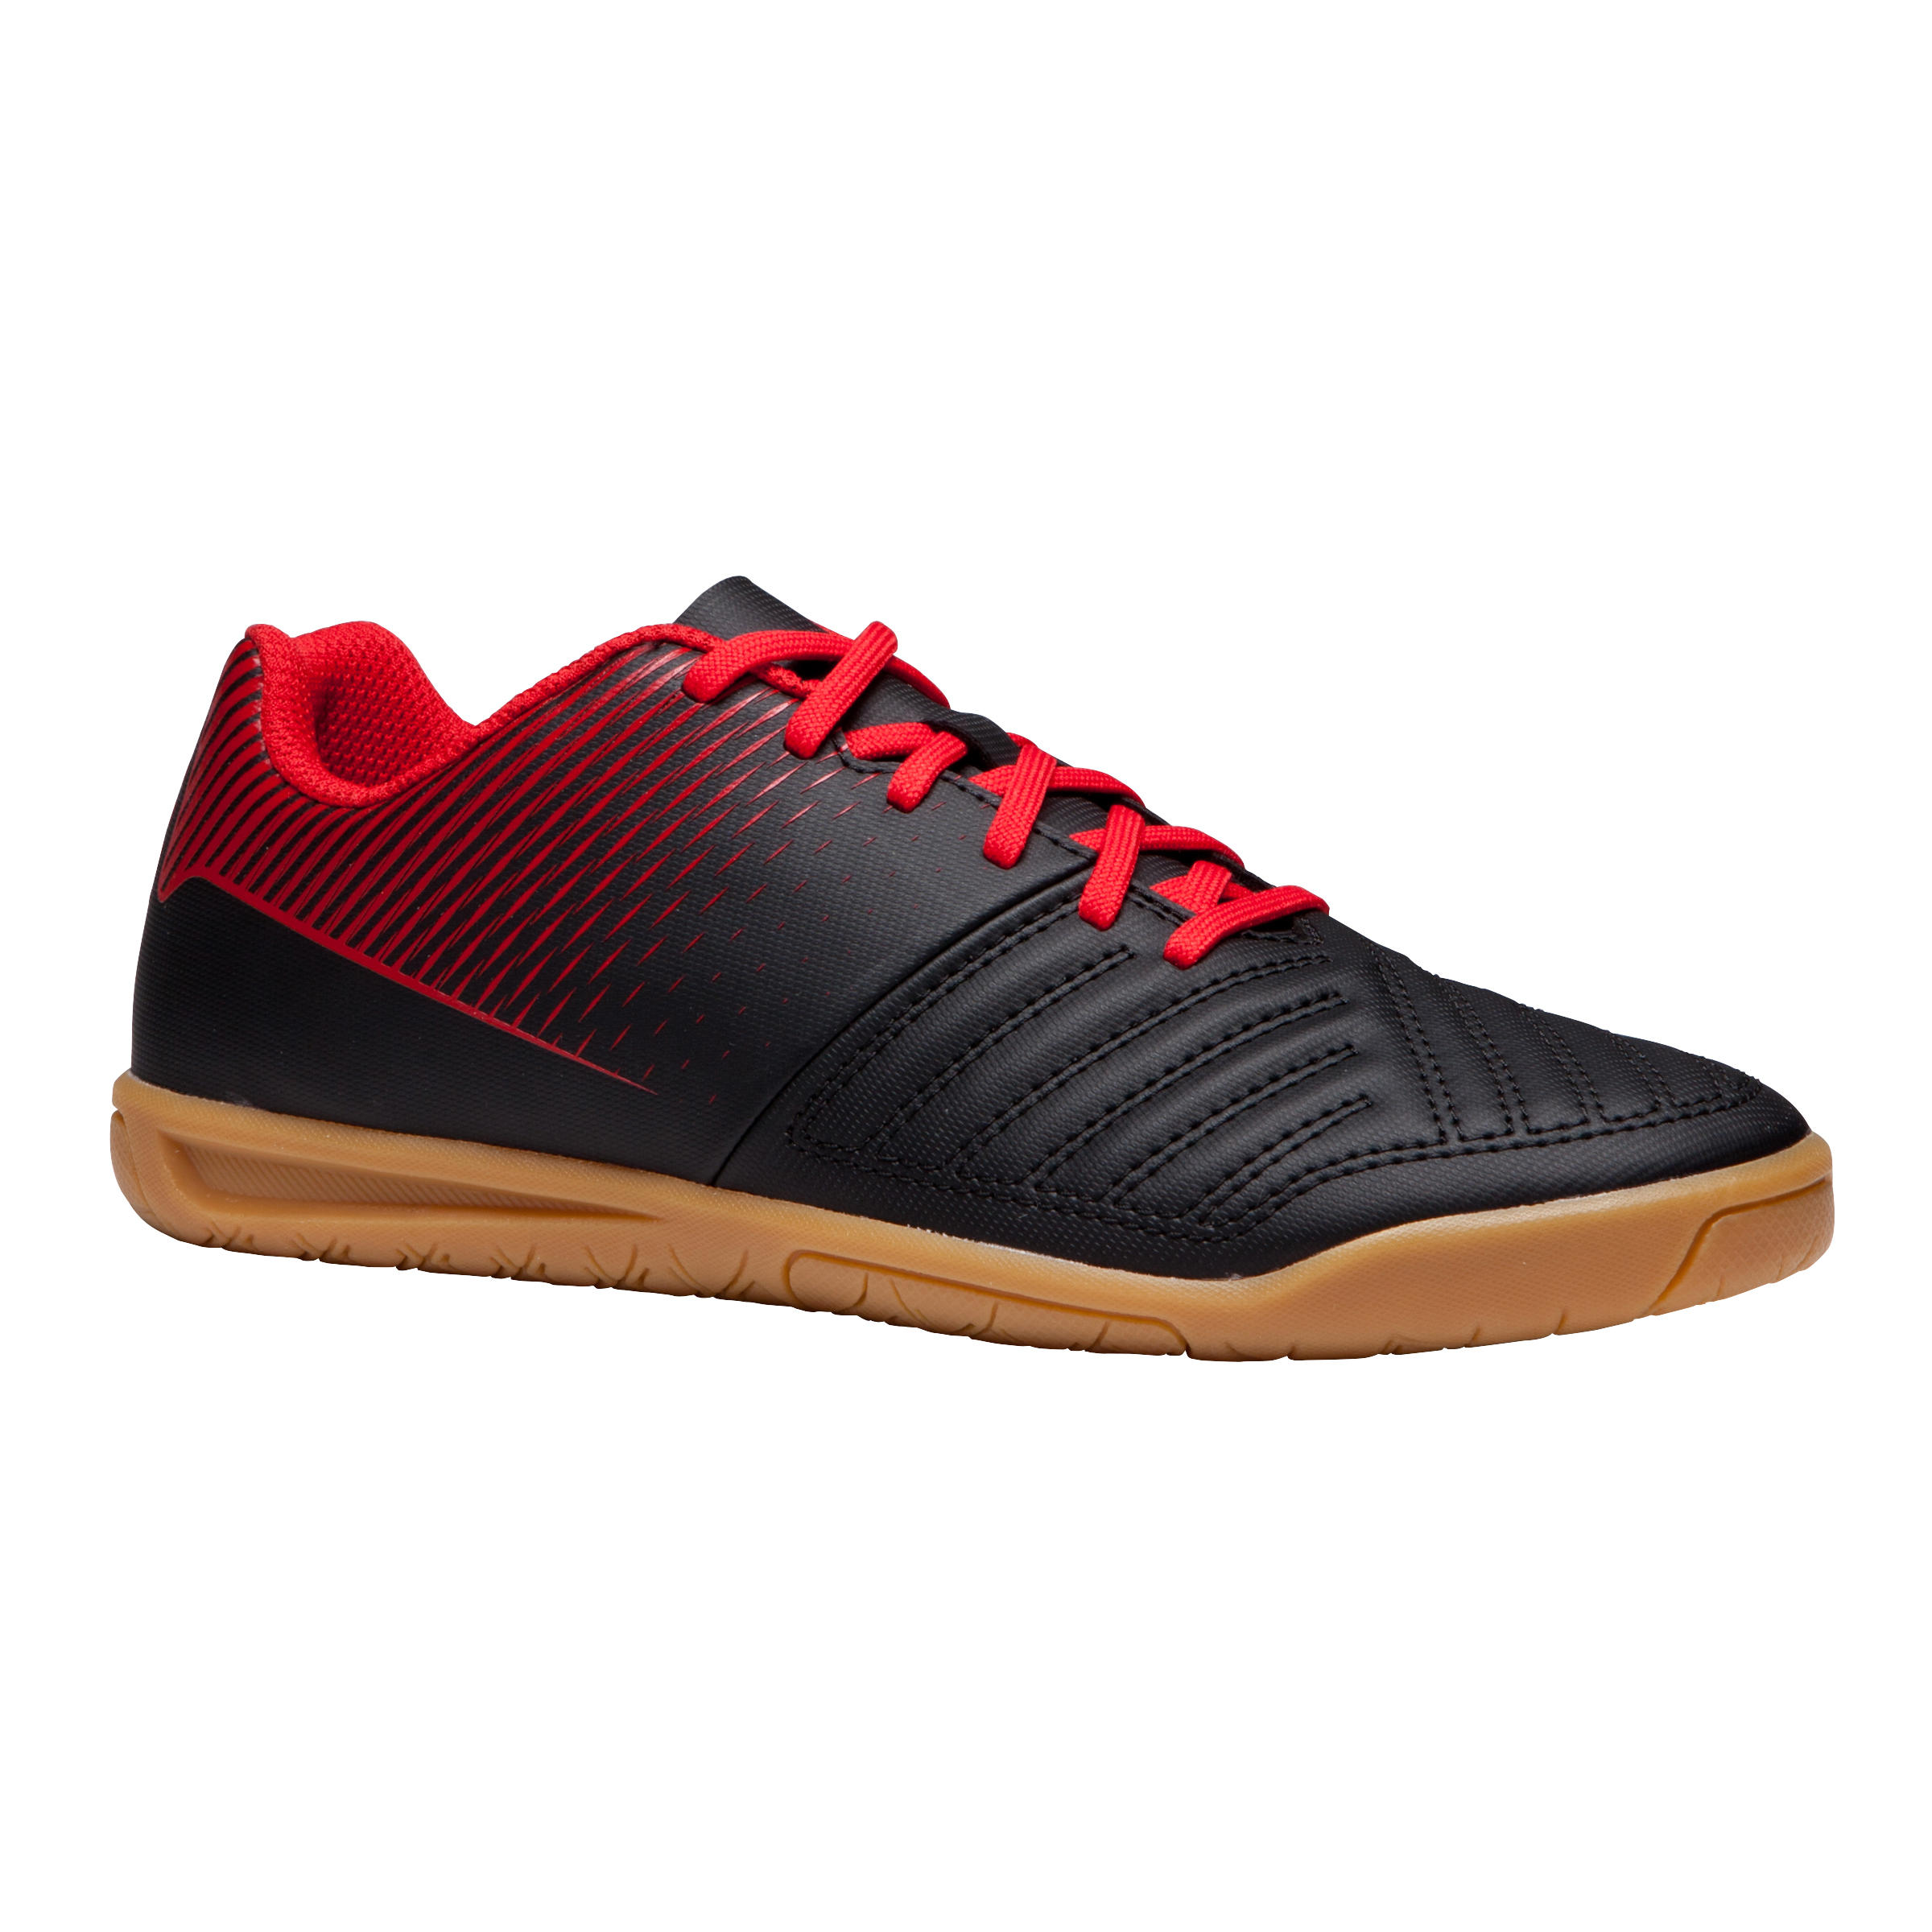 Agility 500 Kids Futsal Boots - Black/Red